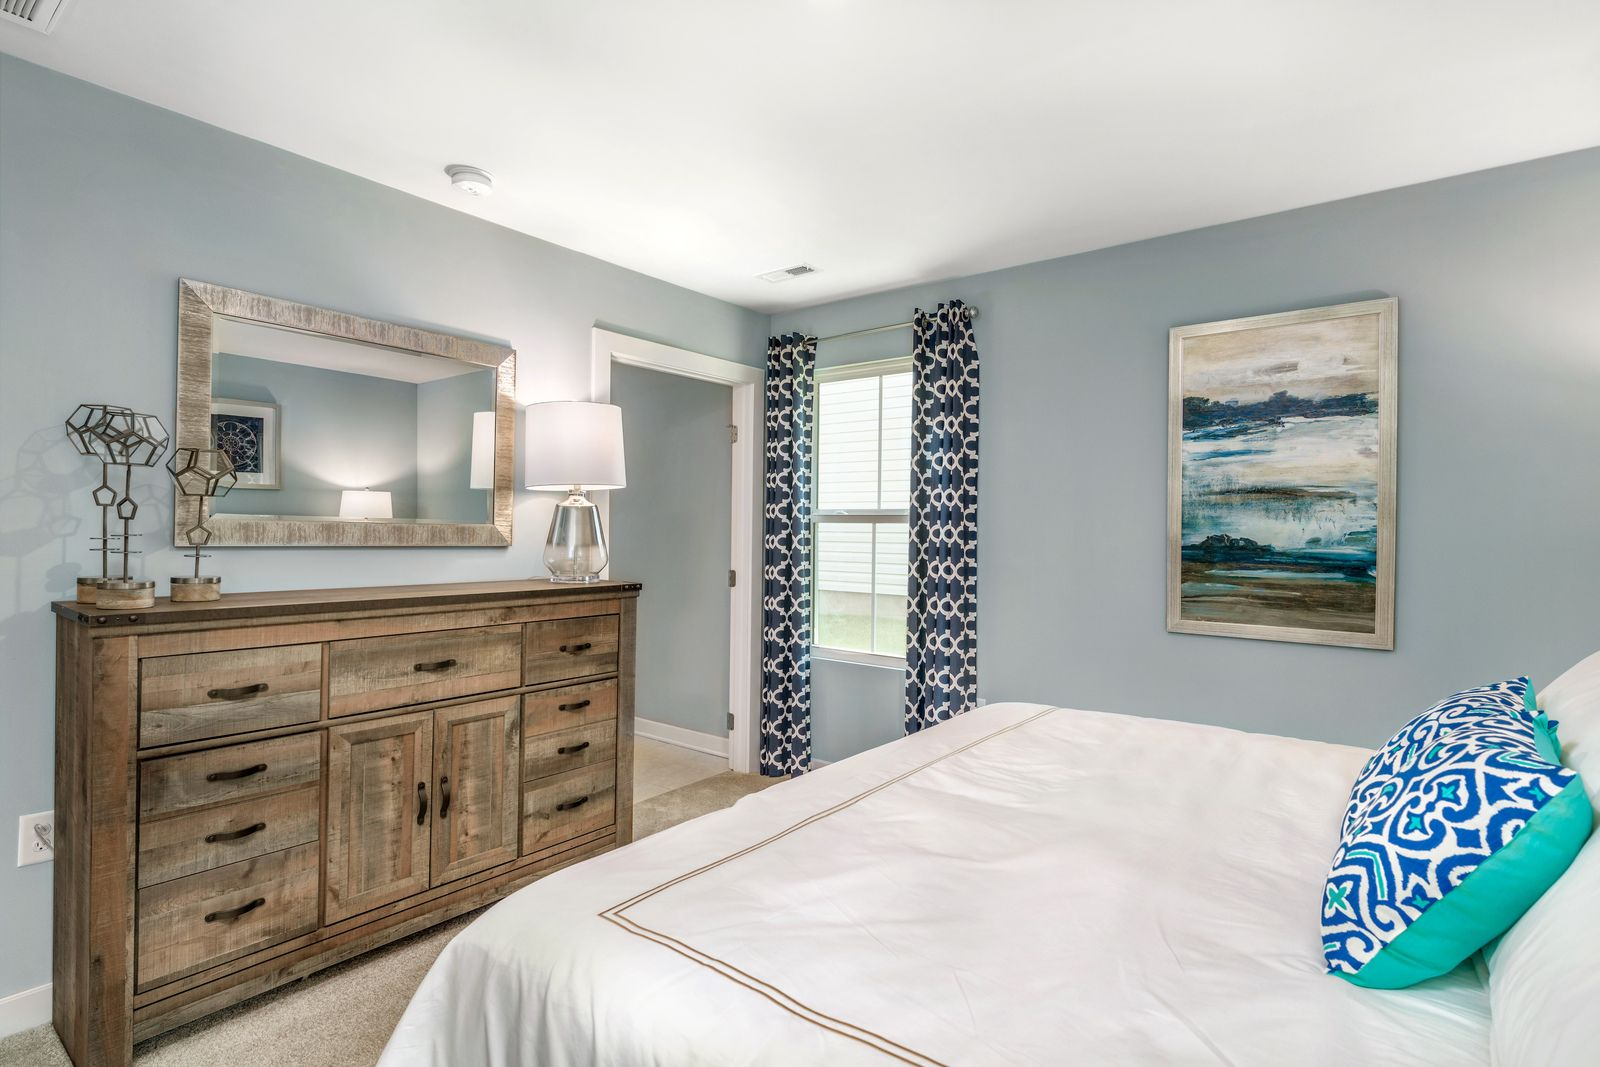 Bedroom featured in the Aruba Bay By Ryan Homes in Cumberland County, NJ